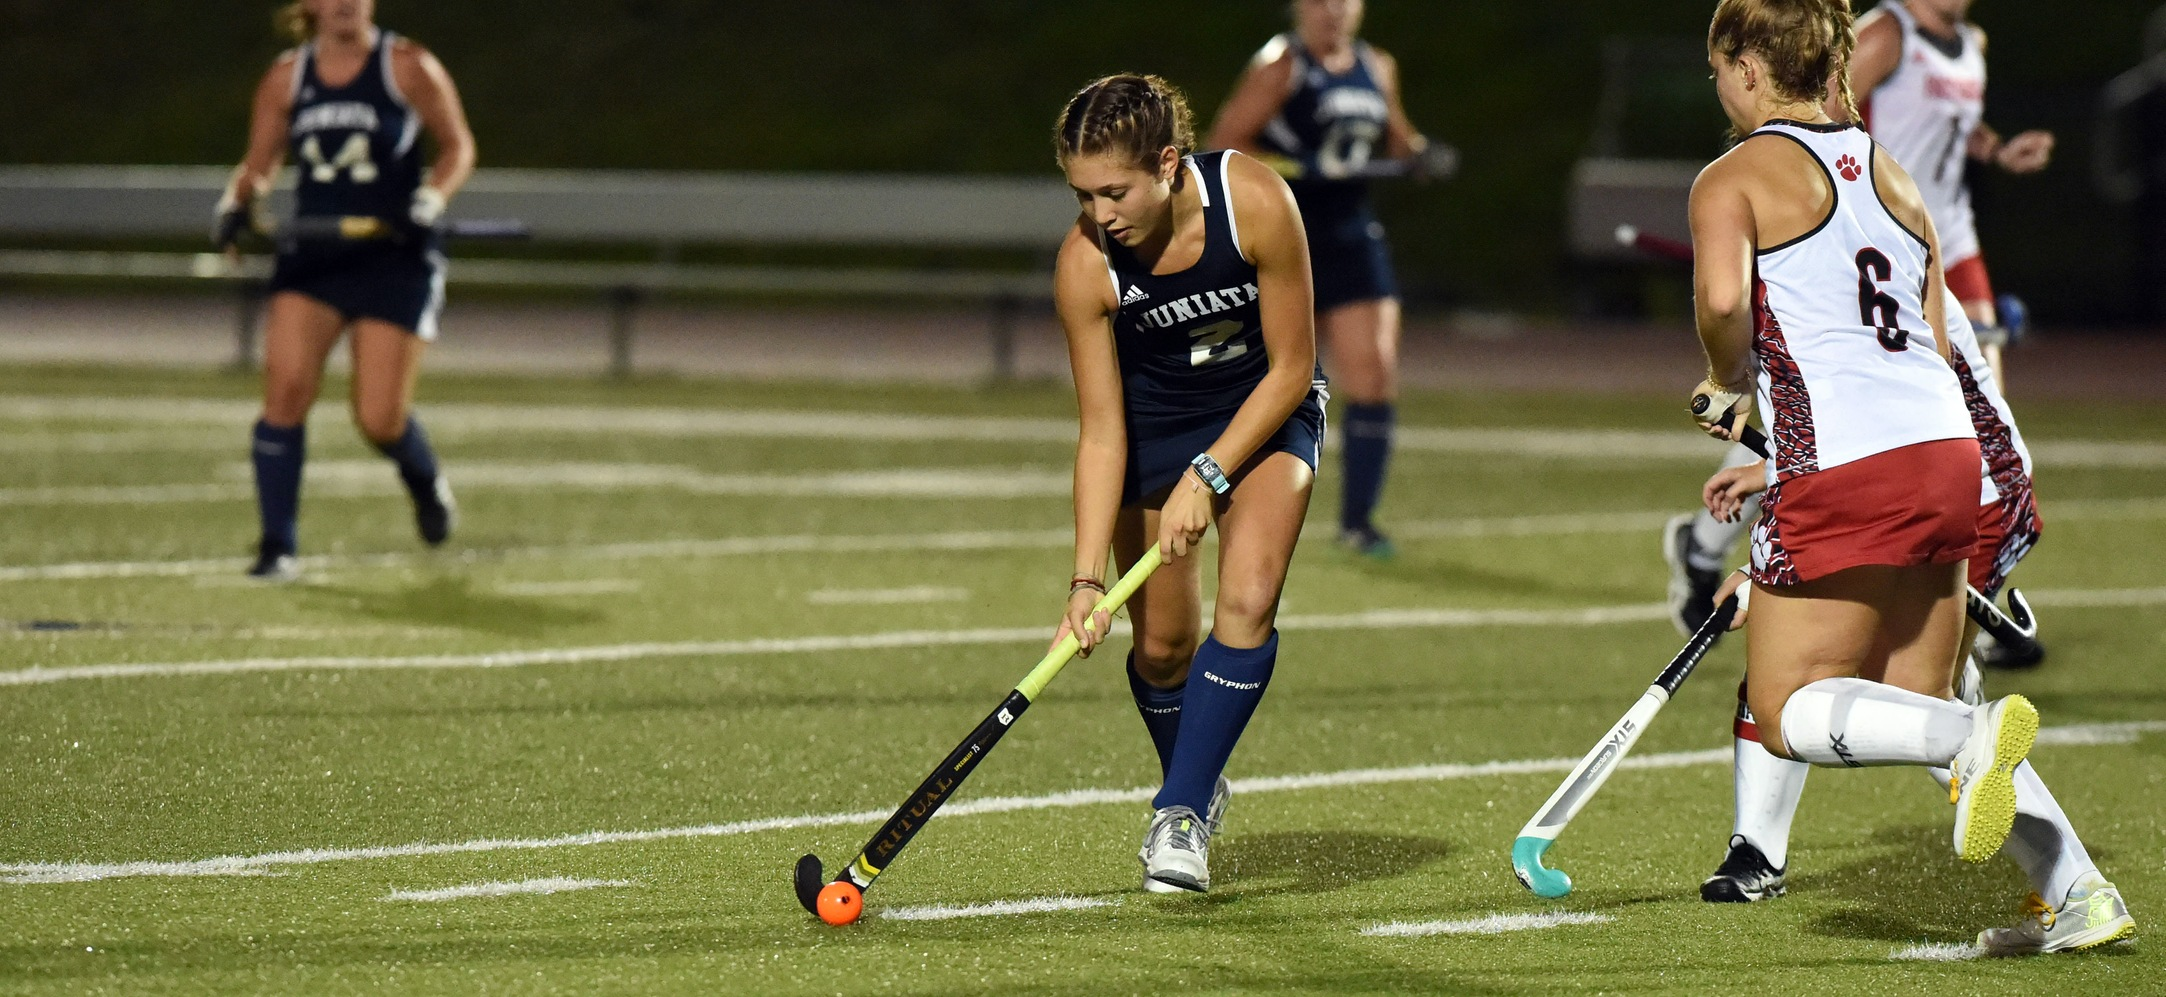 Grace Alexander scored two goals in the Eagles loss at Susquehanna.